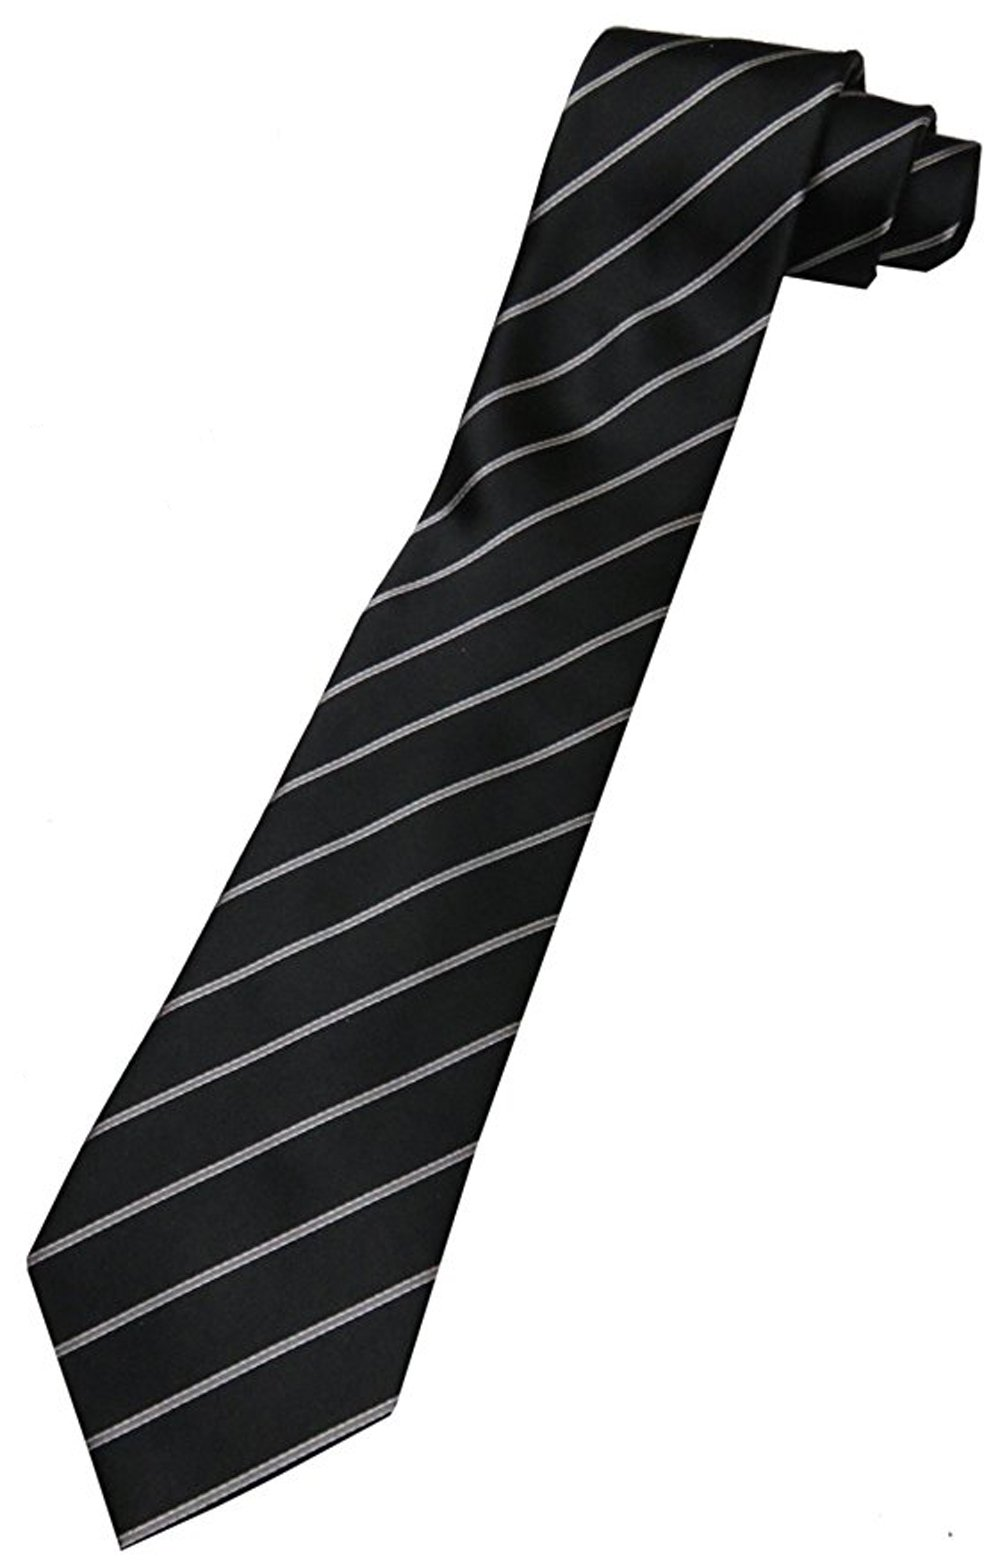 Donald Trump Neck Tie Black and Silver by Donald Trump